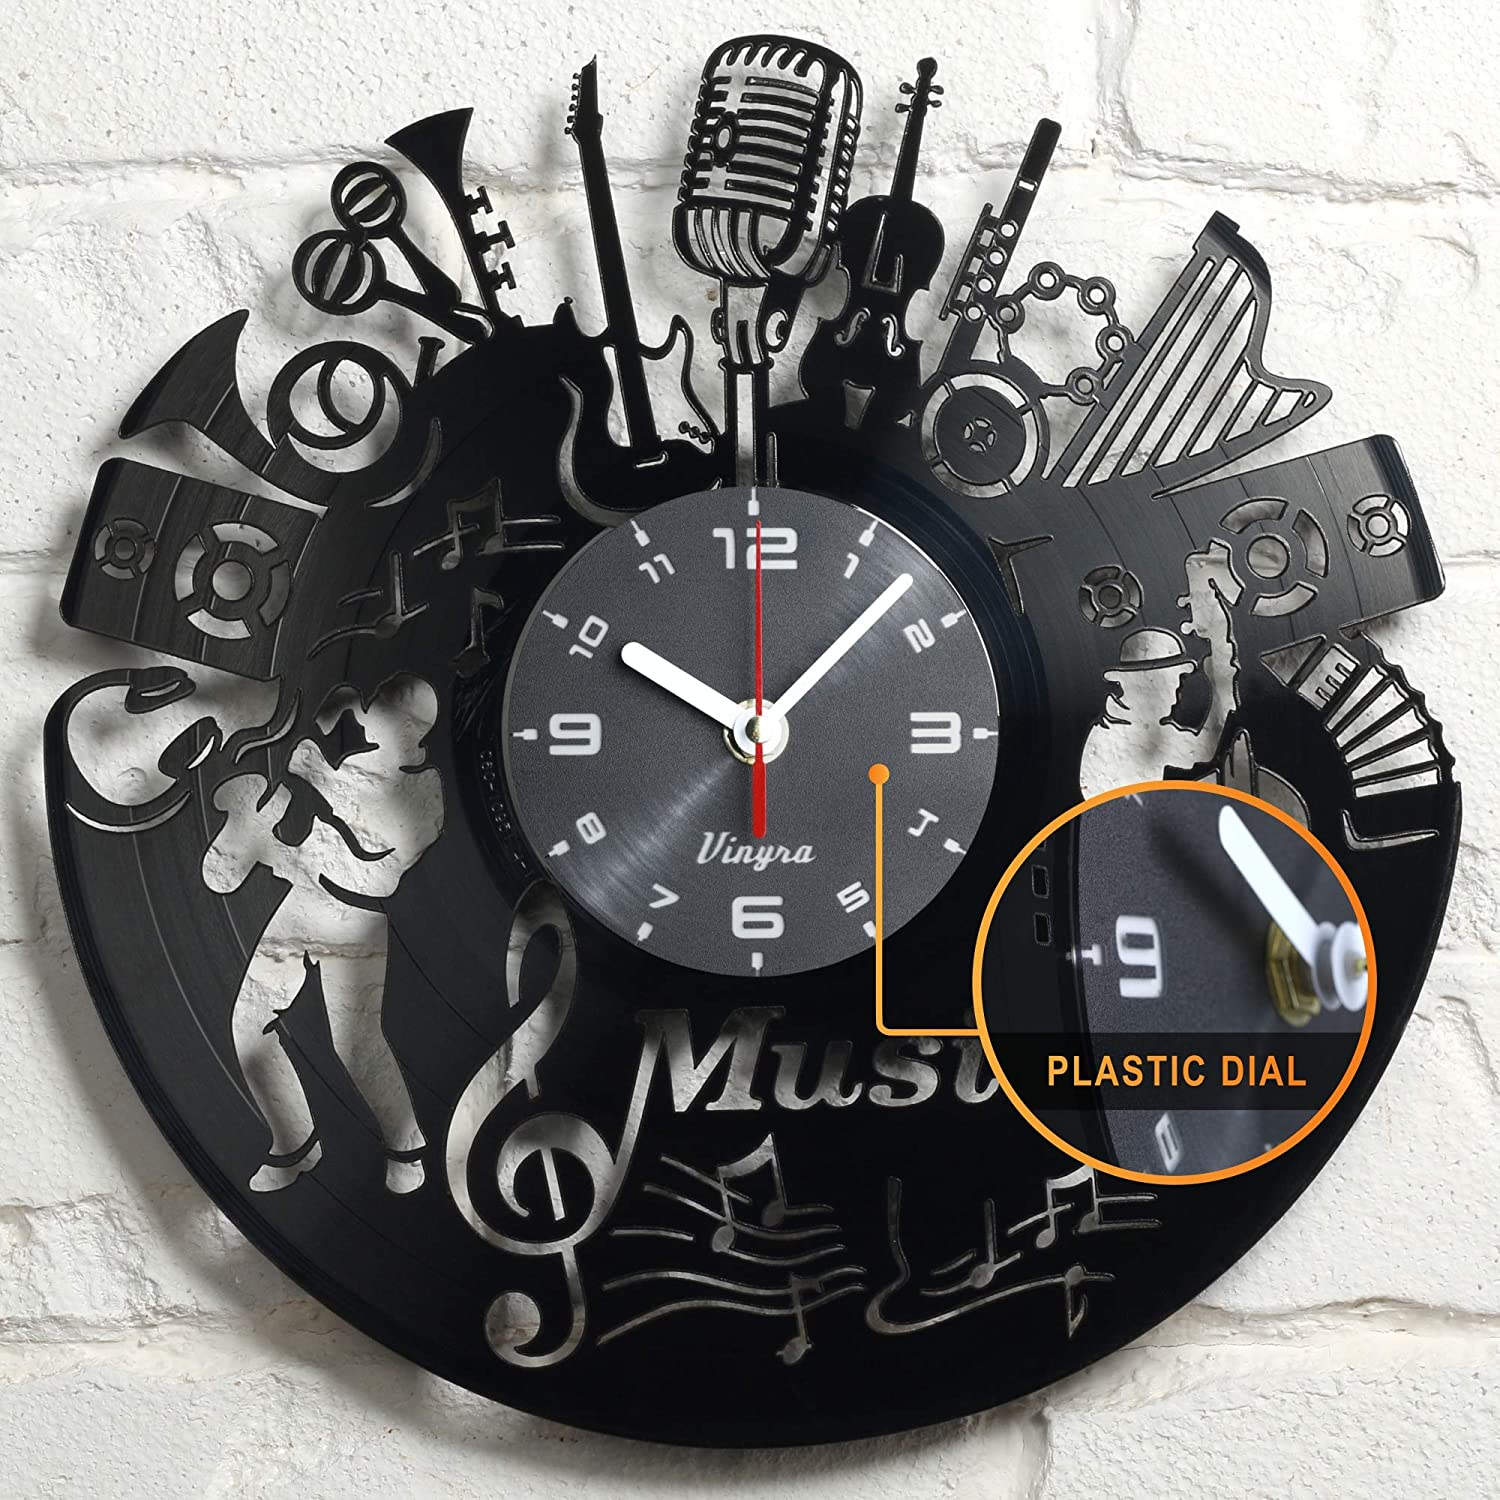 "Vinyra Music Vinyl Record Wall Clock Vintage Microphone Musical Instrument Saxophone Violin Theme Jazz Notes Art Home Room Decor Musician Gift Set Idea for Music Lovers 12"" LP Clock Black"